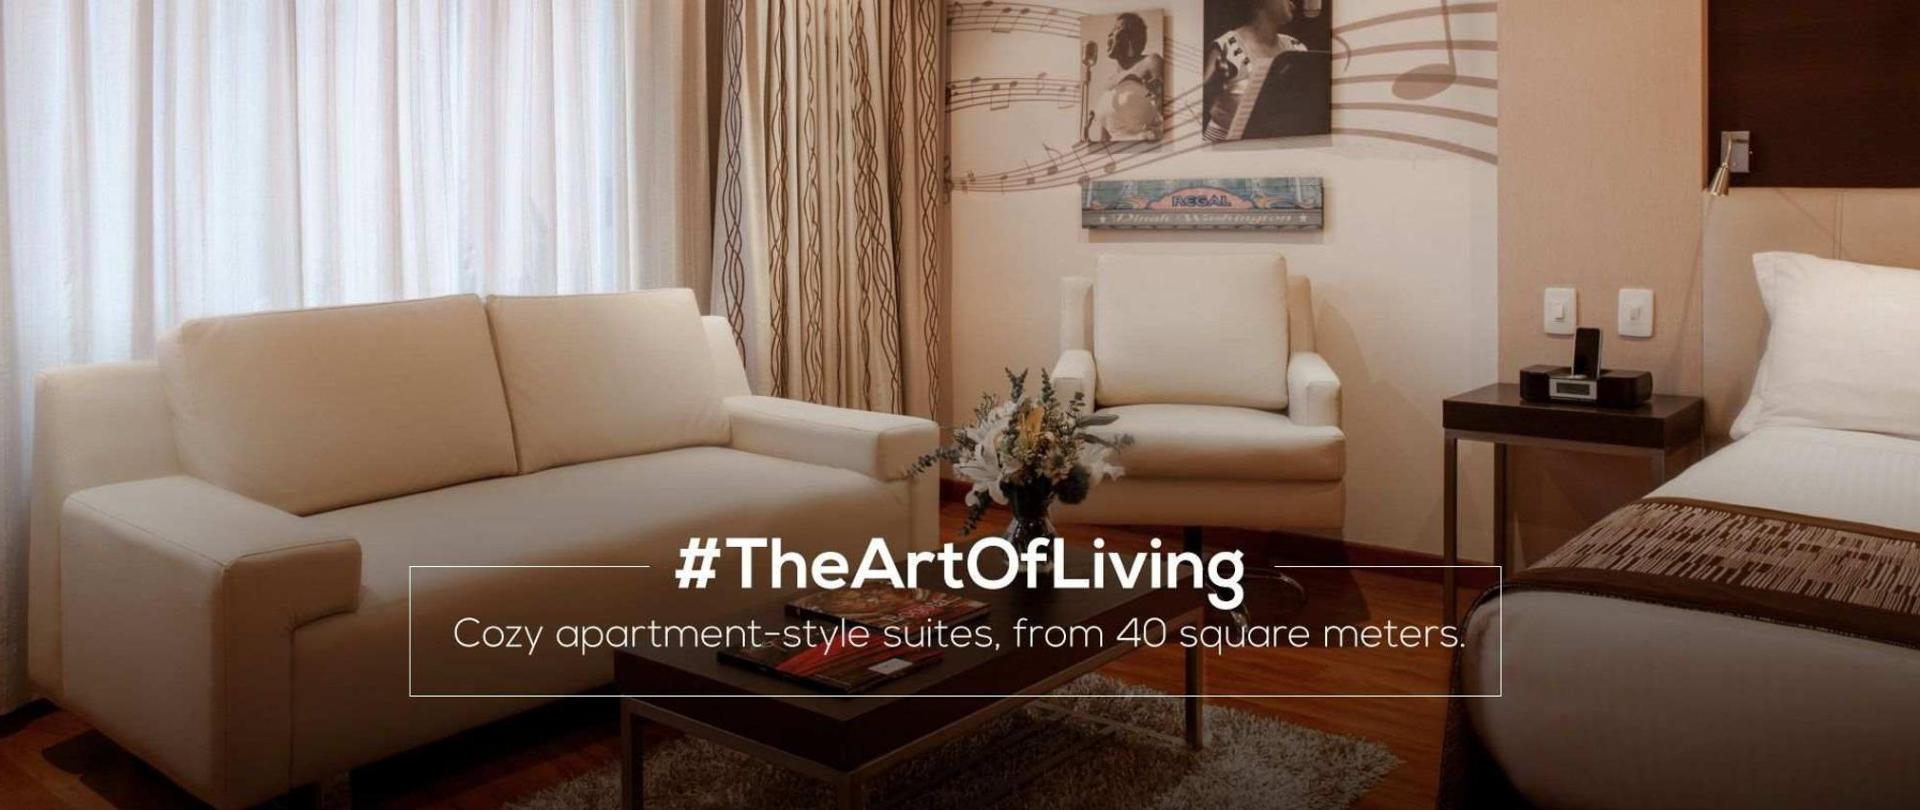 www-jazzapartments-com-the-art-of-living.jpg